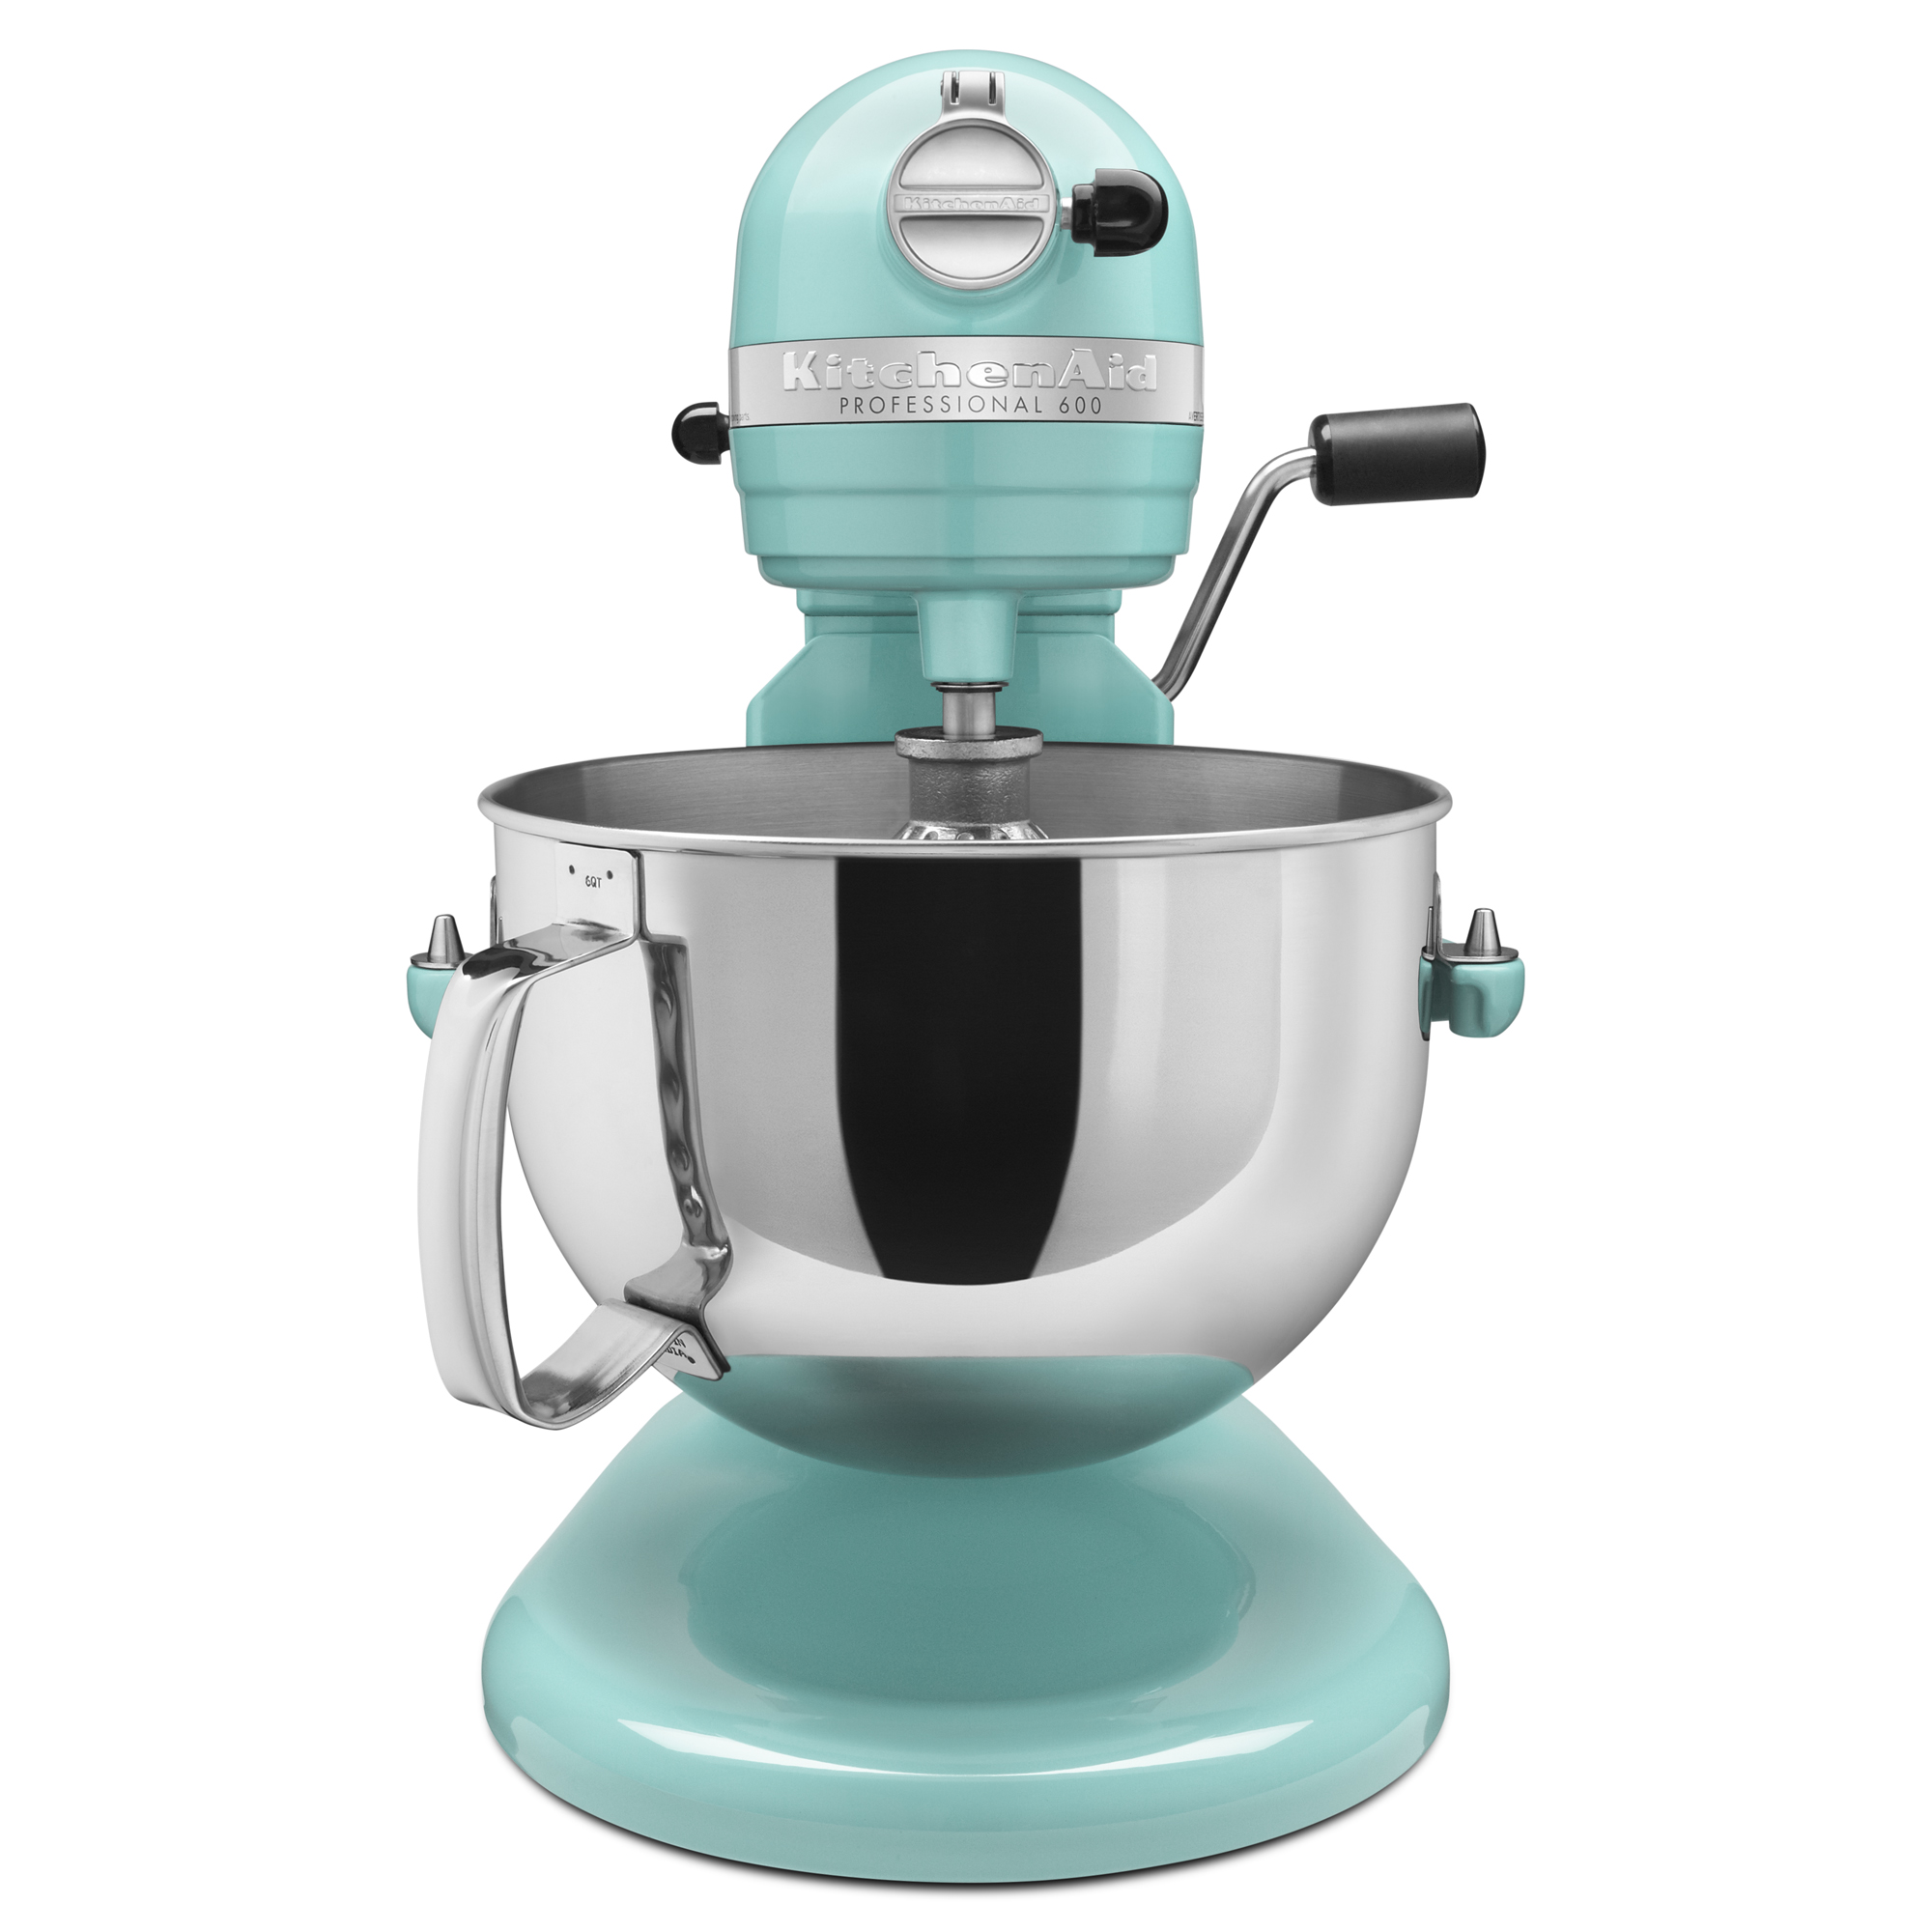 KitchenAid-Refurbished-Pro-600-Series-6-Quart-Bowl-Lift-Stand-Mixer-RKP26M1X thumbnail 5